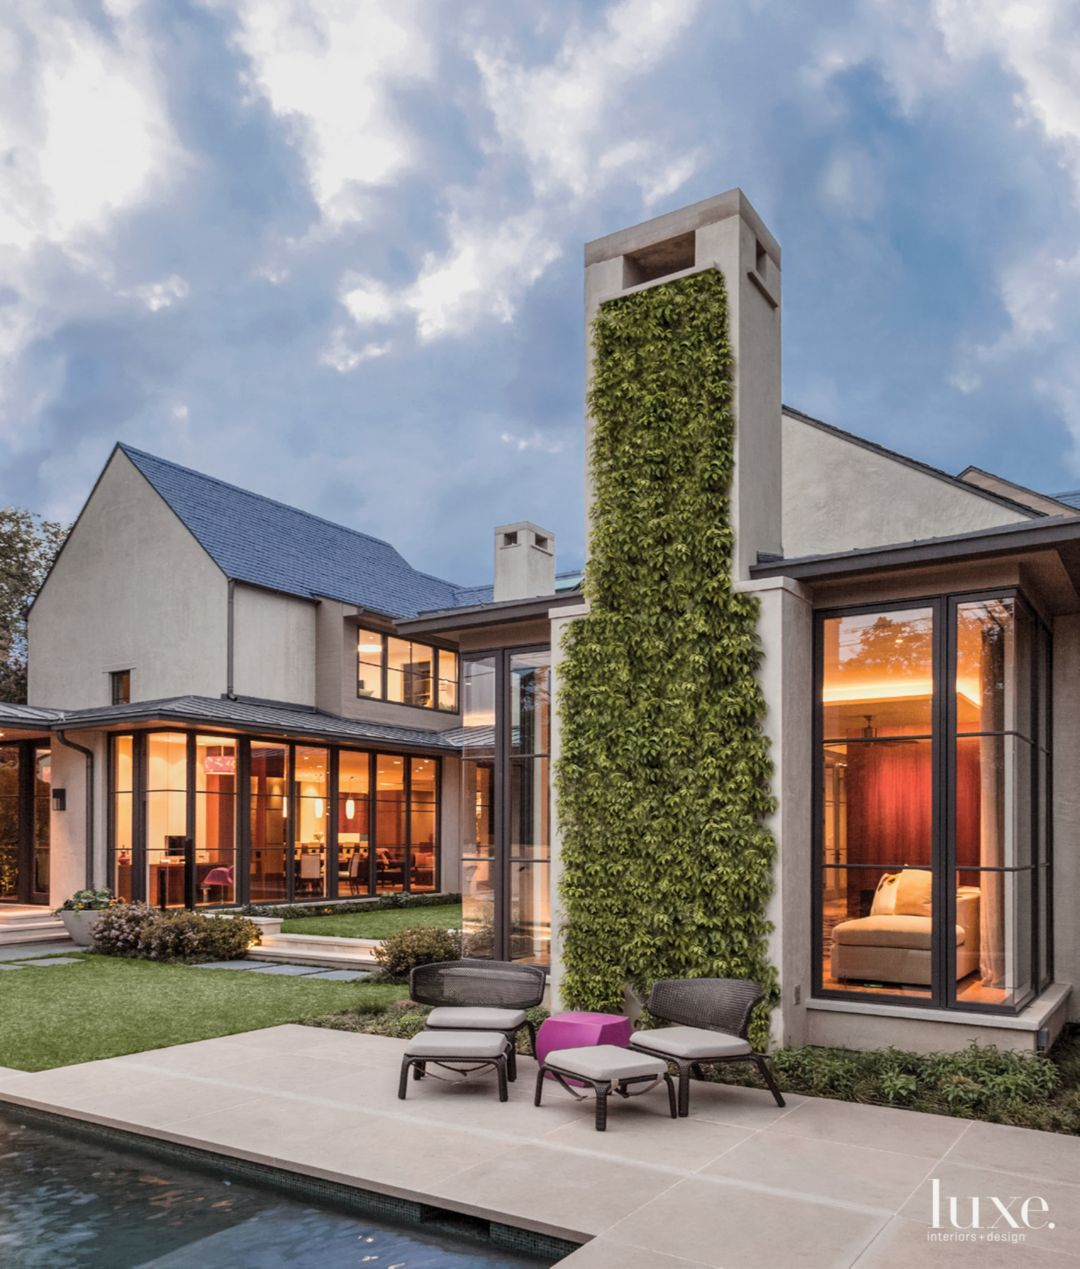 Luxury Residence By Dallas Design: A Modern Dallas Home With A Courtyard-Style Design In 2019